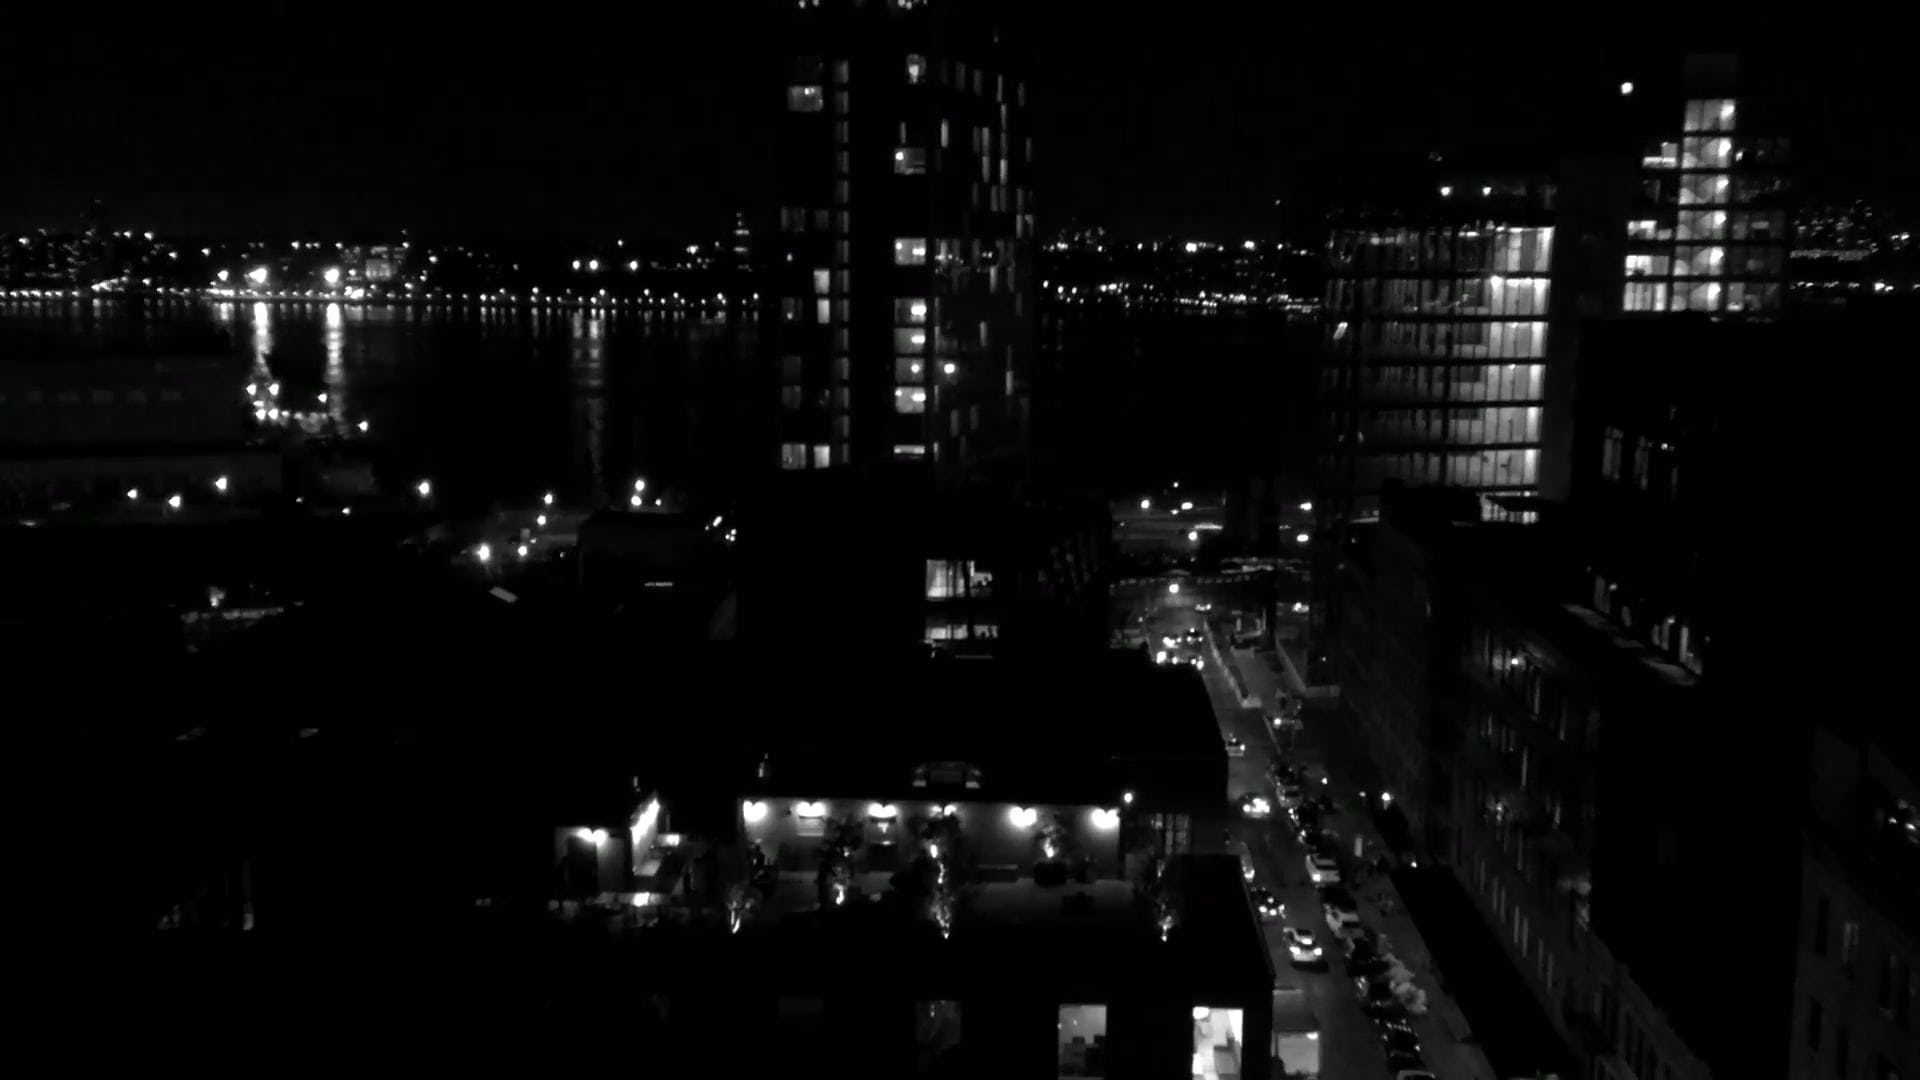 Black And White View Of A City